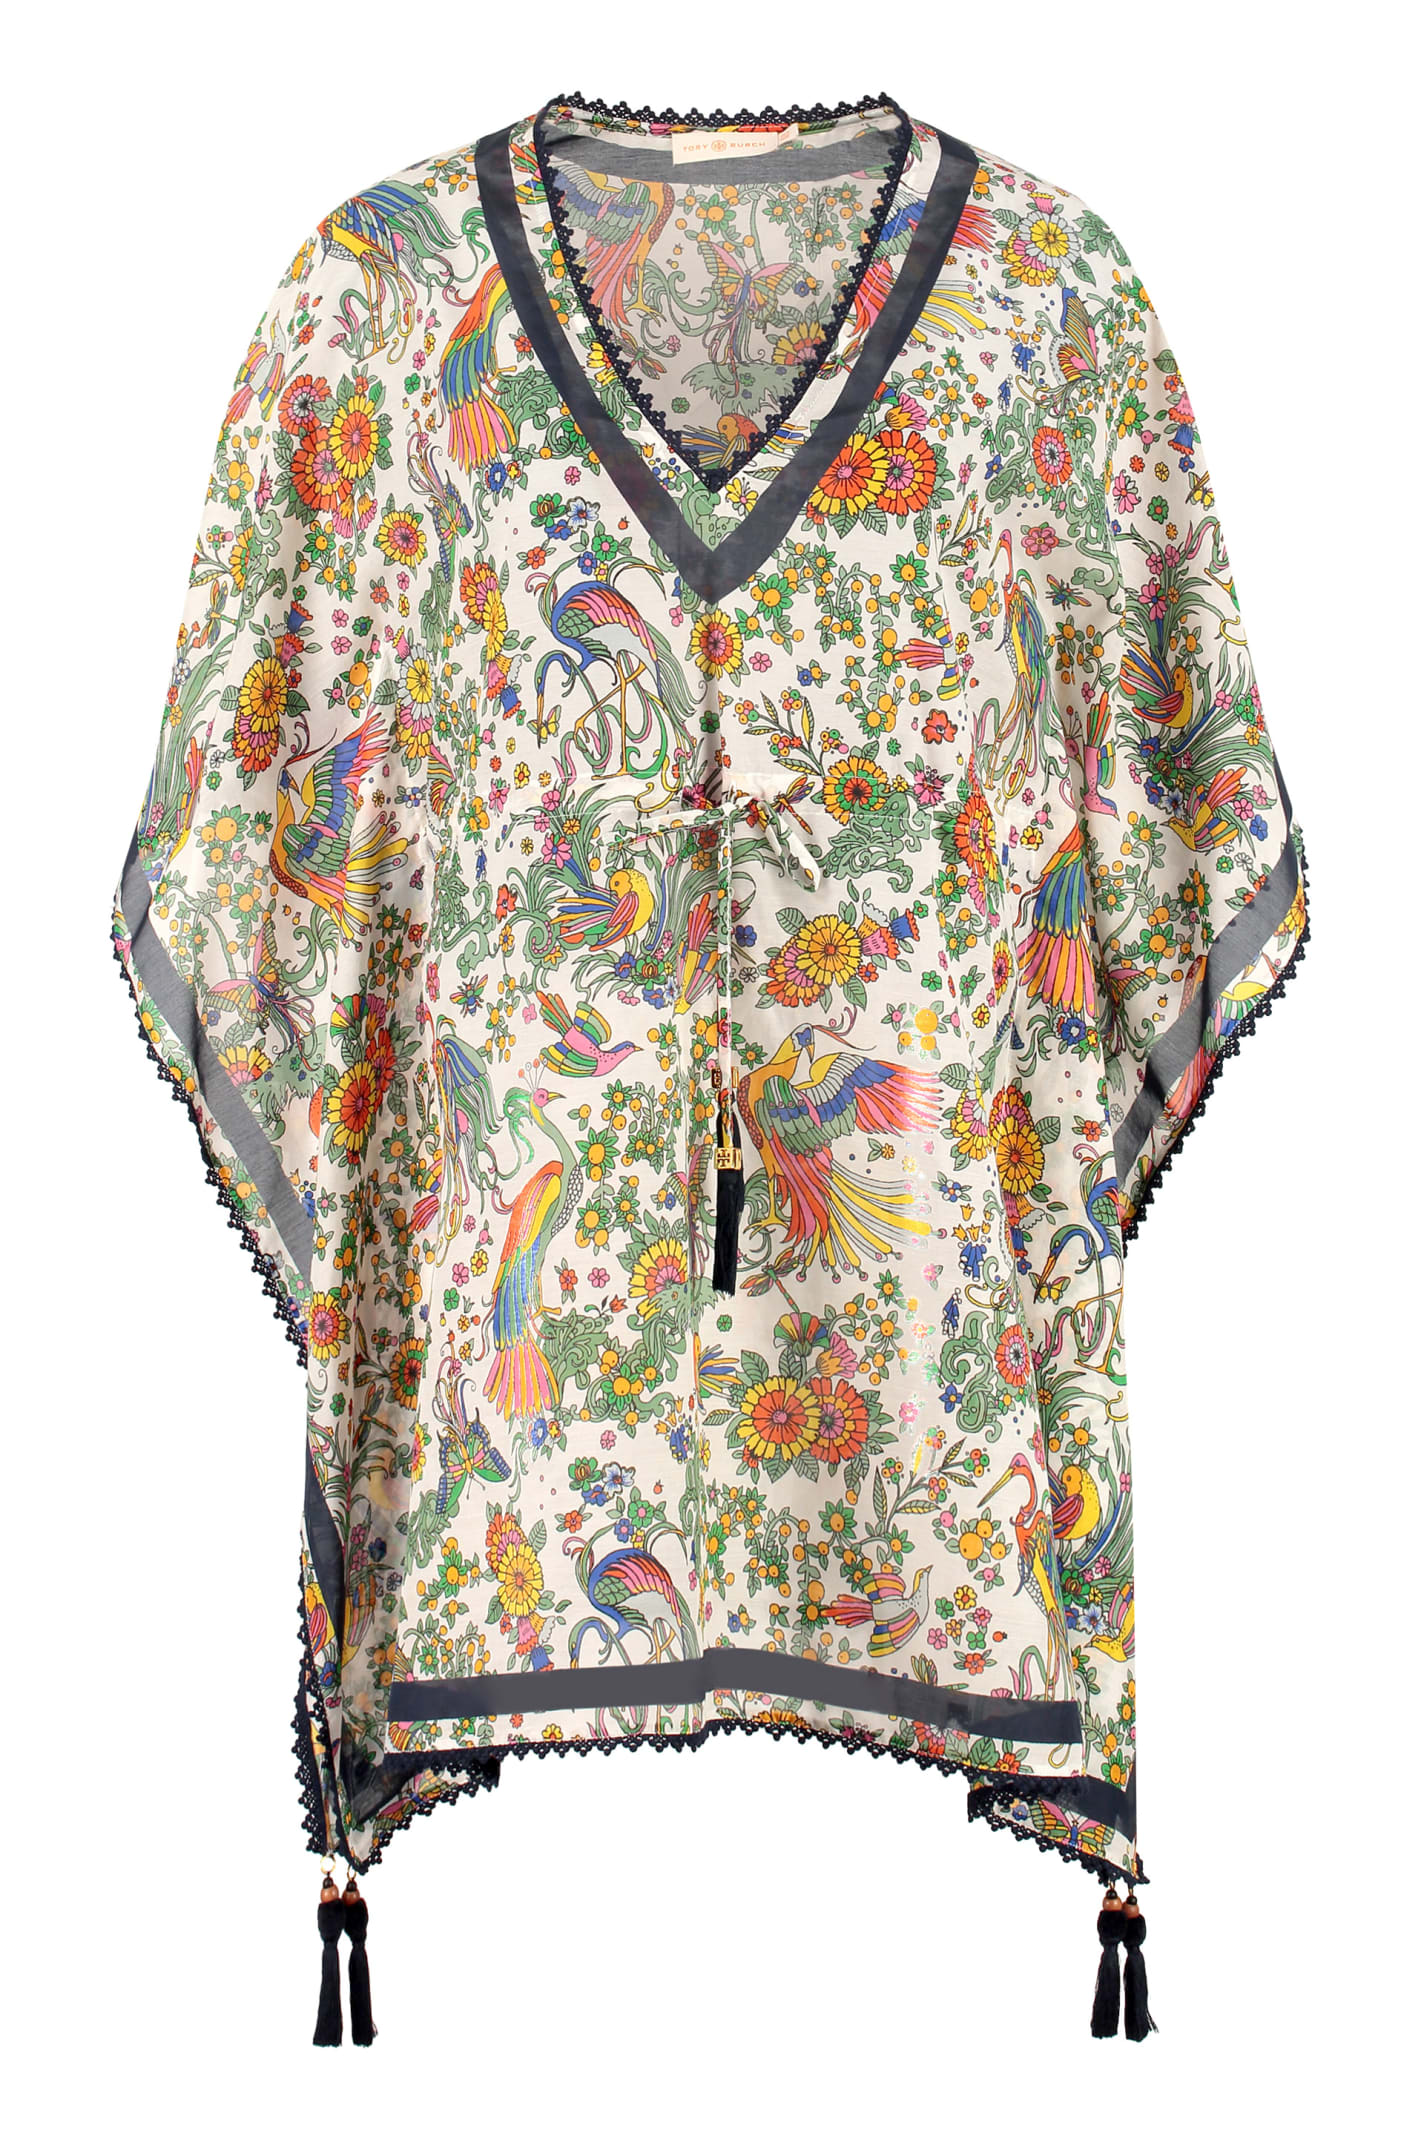 Tory Burch Printed Kaftan Dress